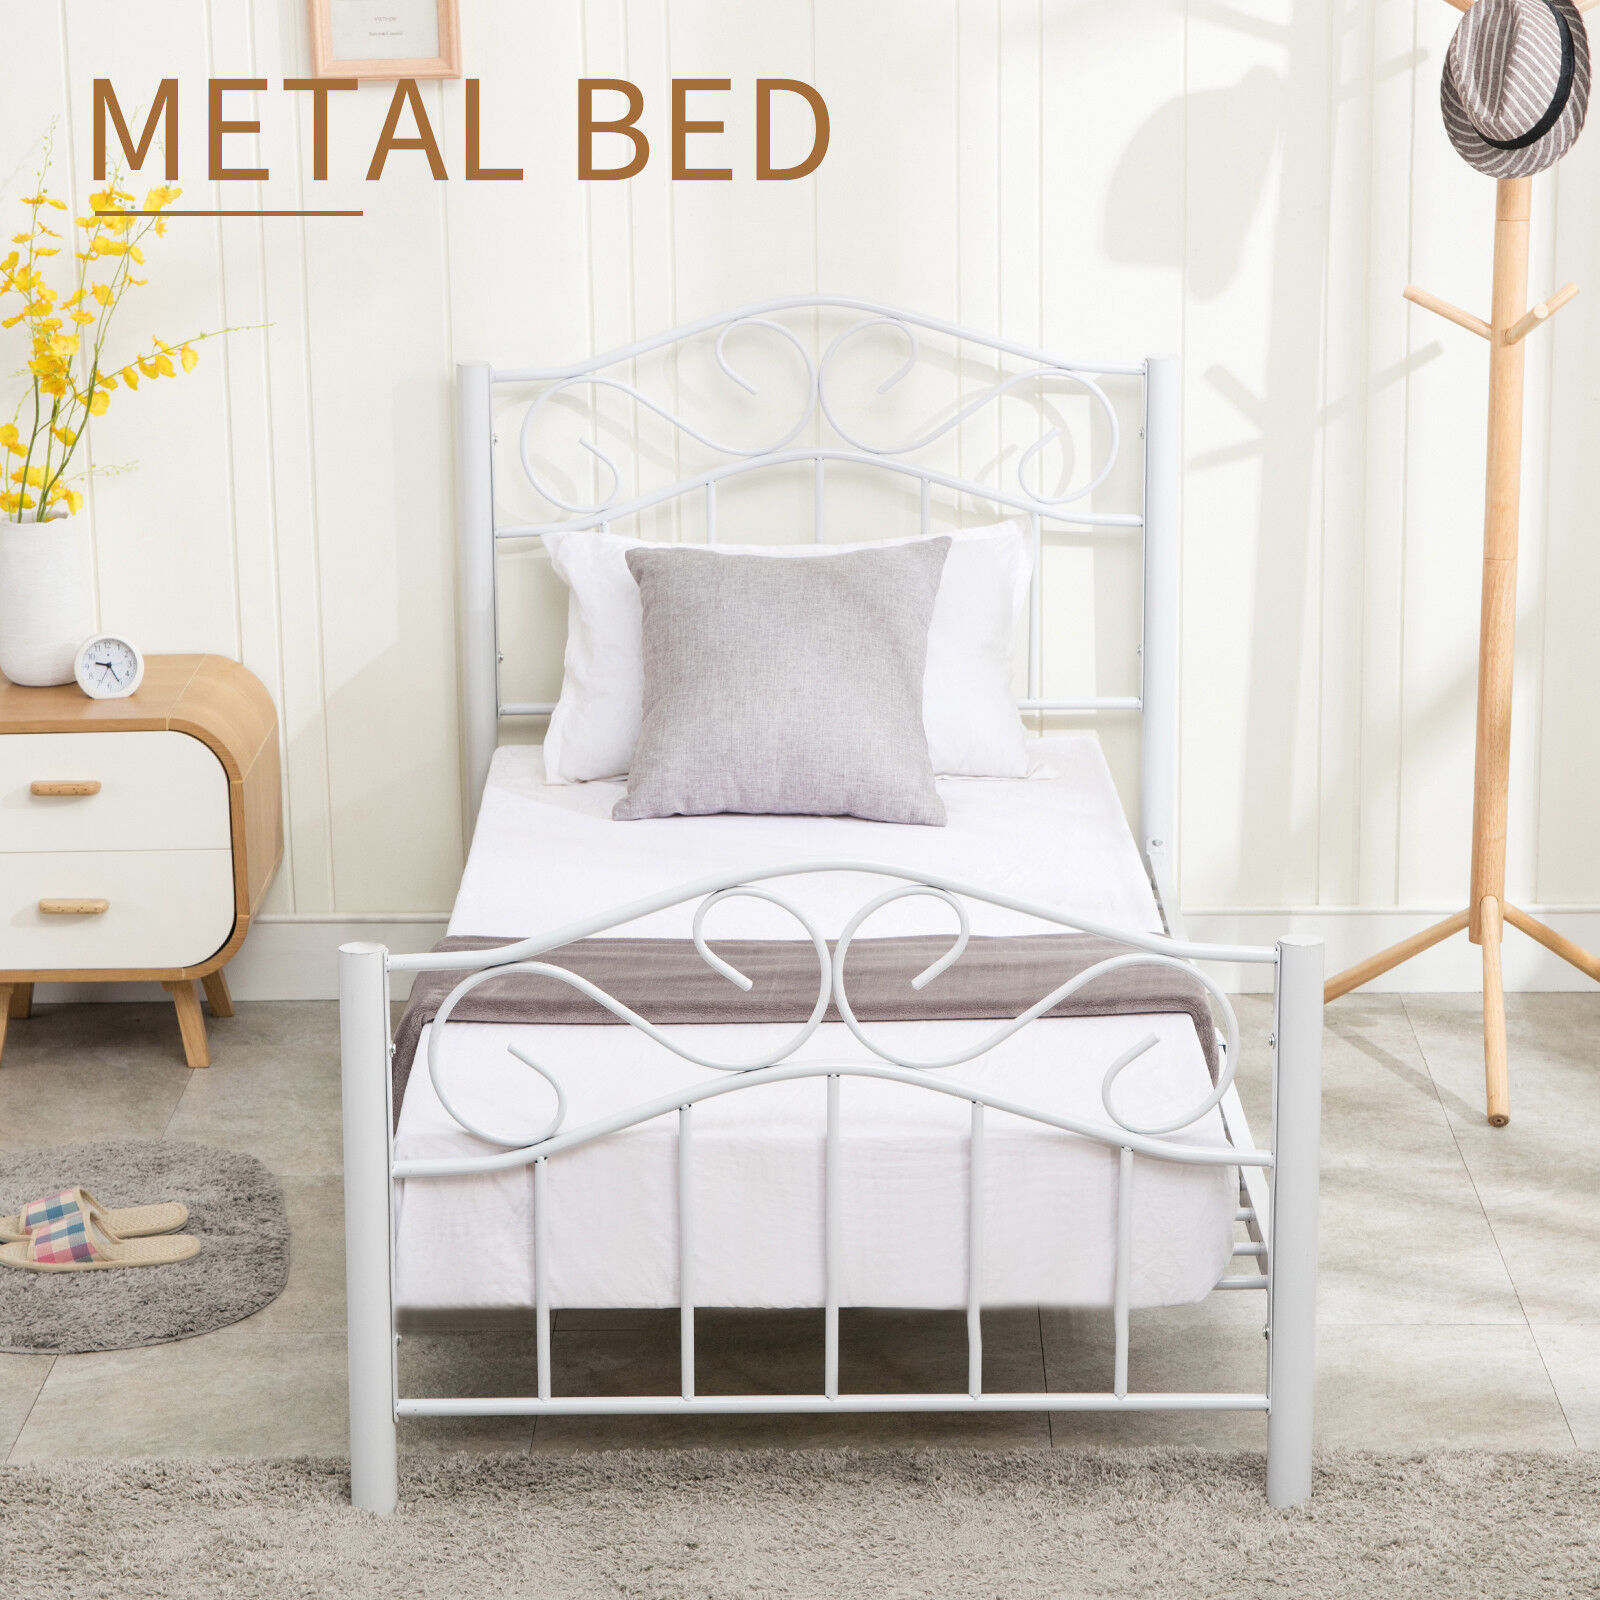 Metal Bed Headboards Details About Heavy Duty Twin Size Metal Bed Frame W Headboard Footboard Girls Bedroom White